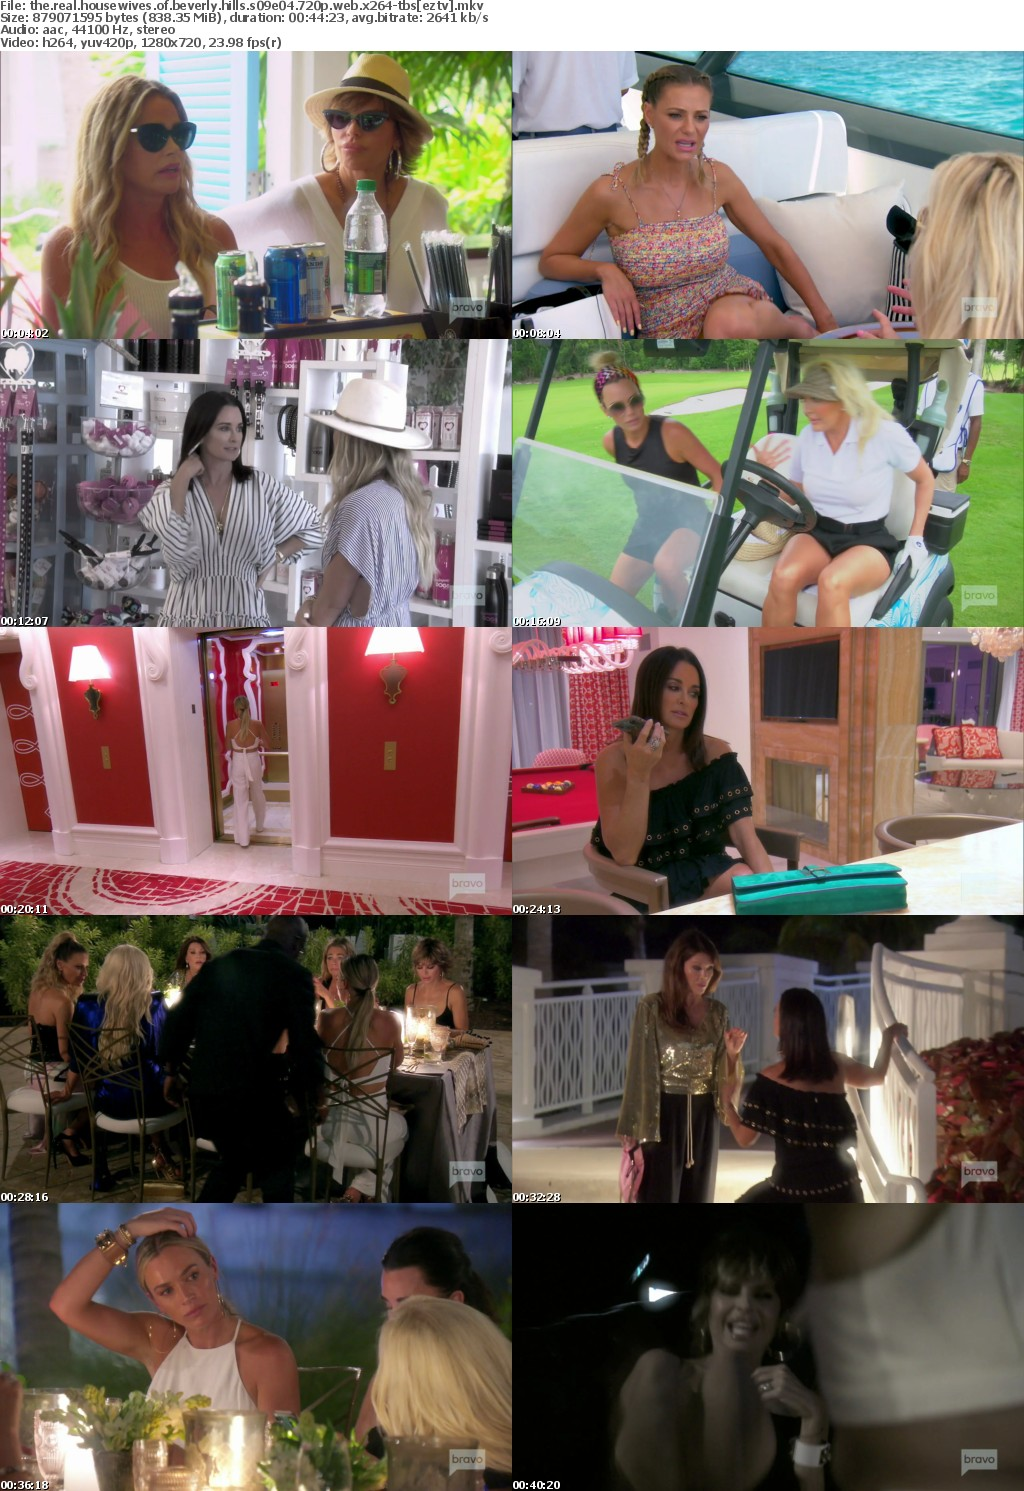 The Real Housewives of Beverly Hills S09E04 720p WEB x264-TBS